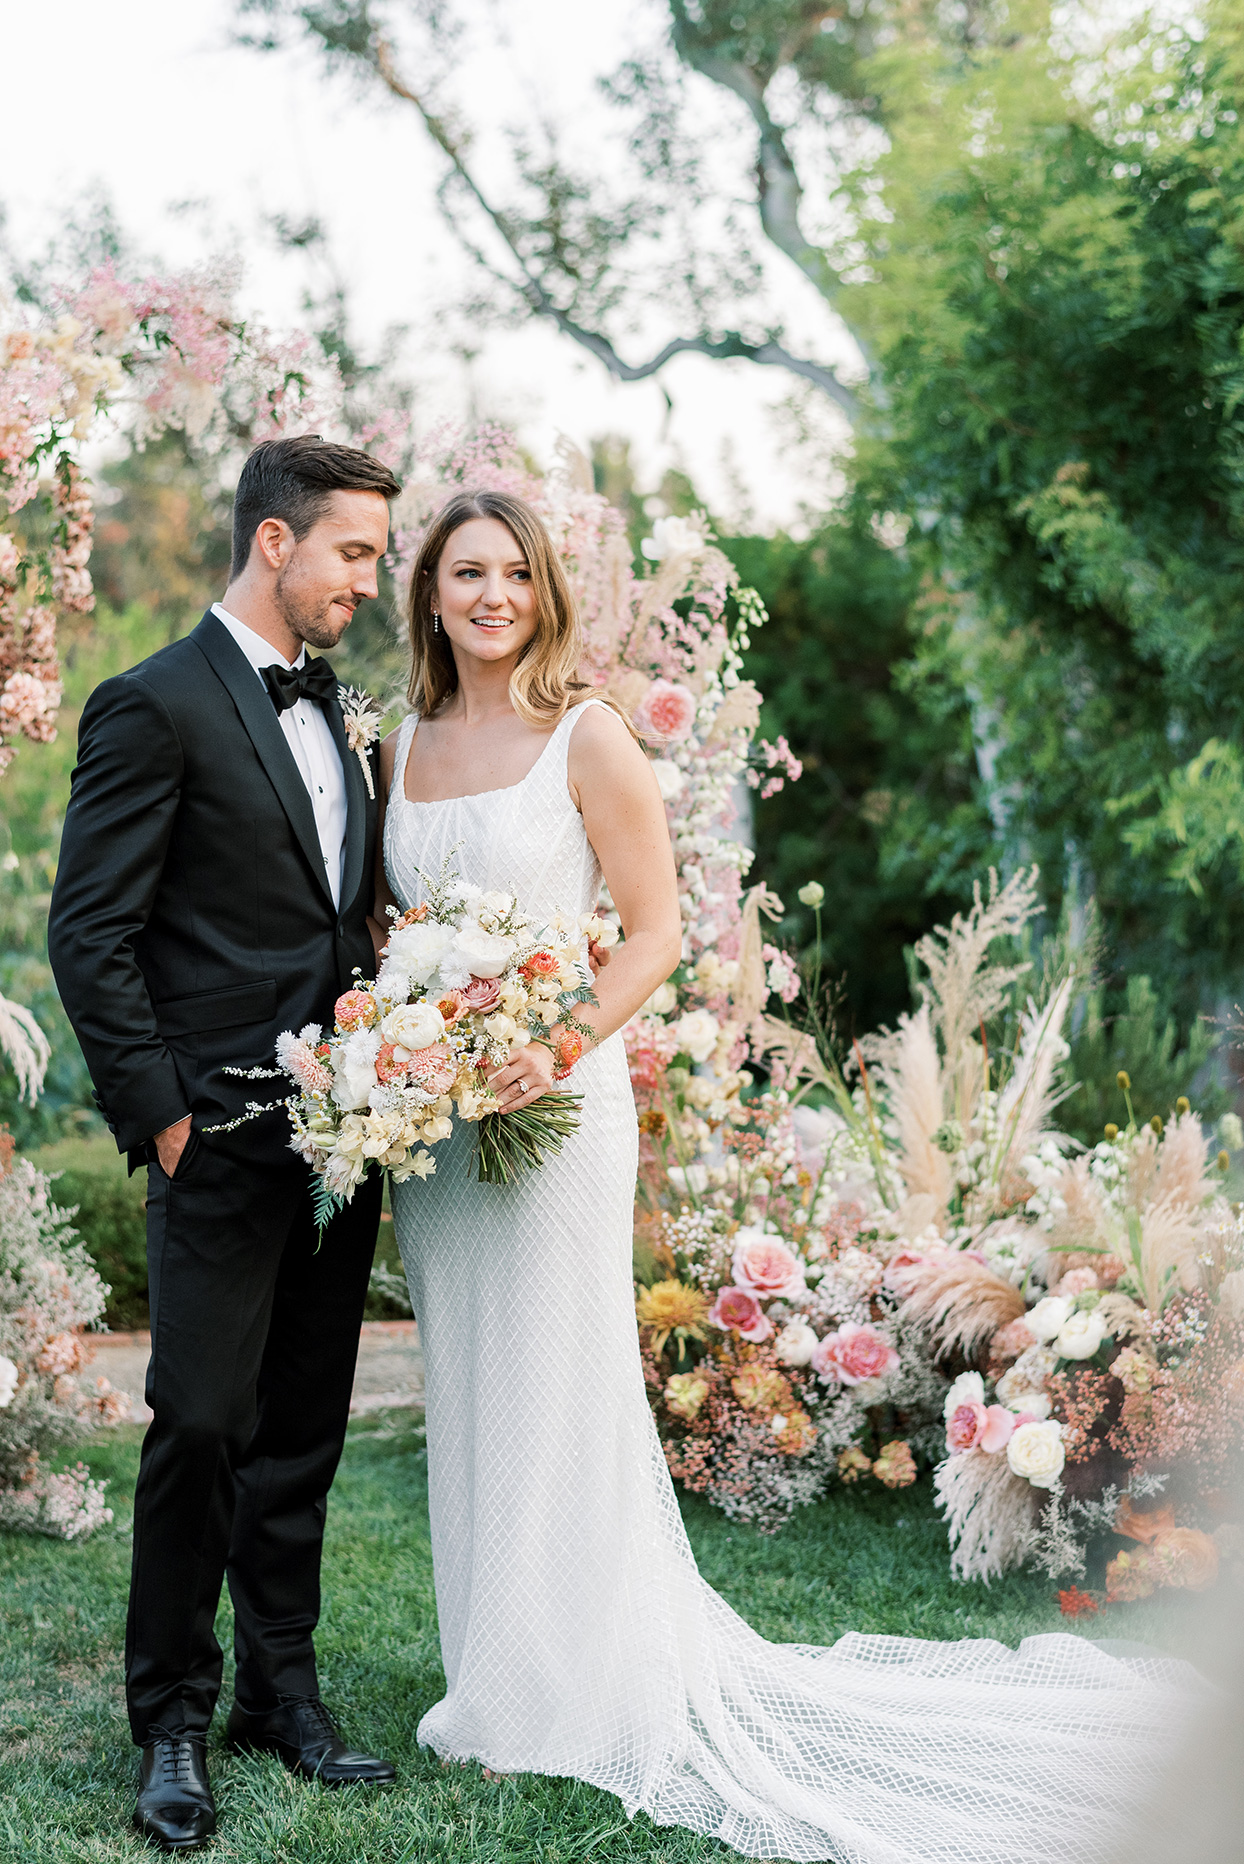 bride and groom standing in backyard by floral arch